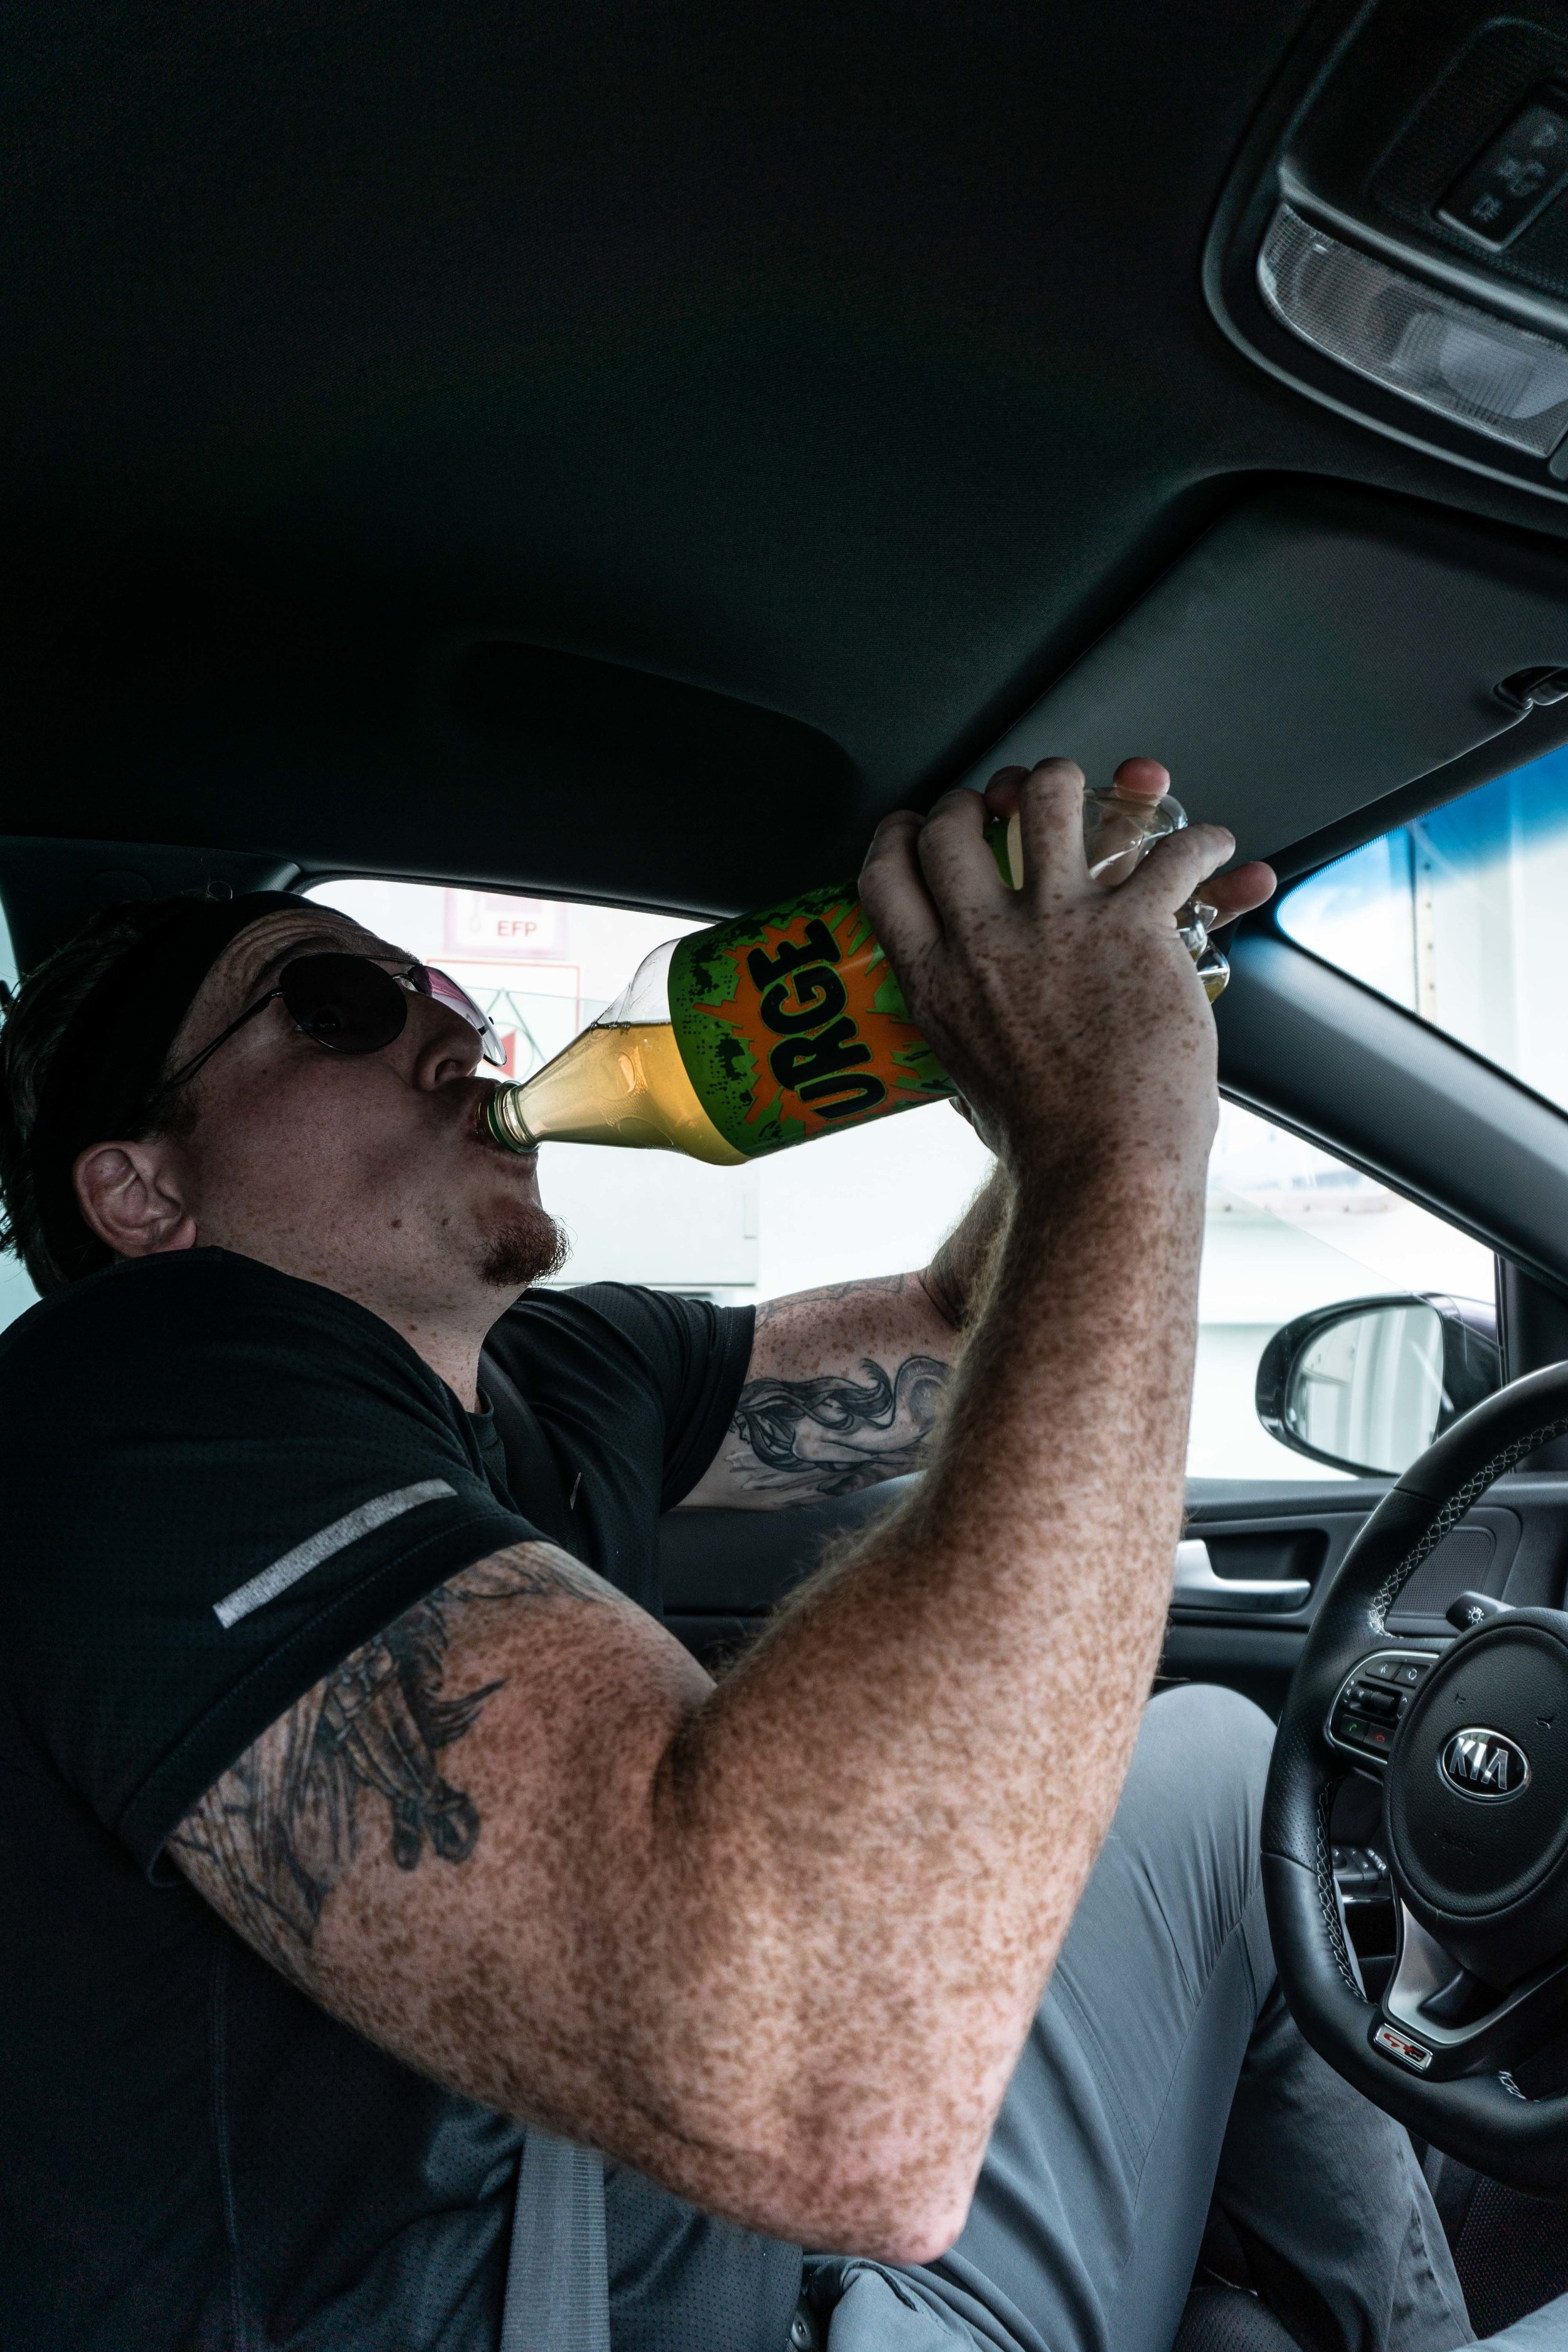 DRINK! ALL! THE! SURGE!